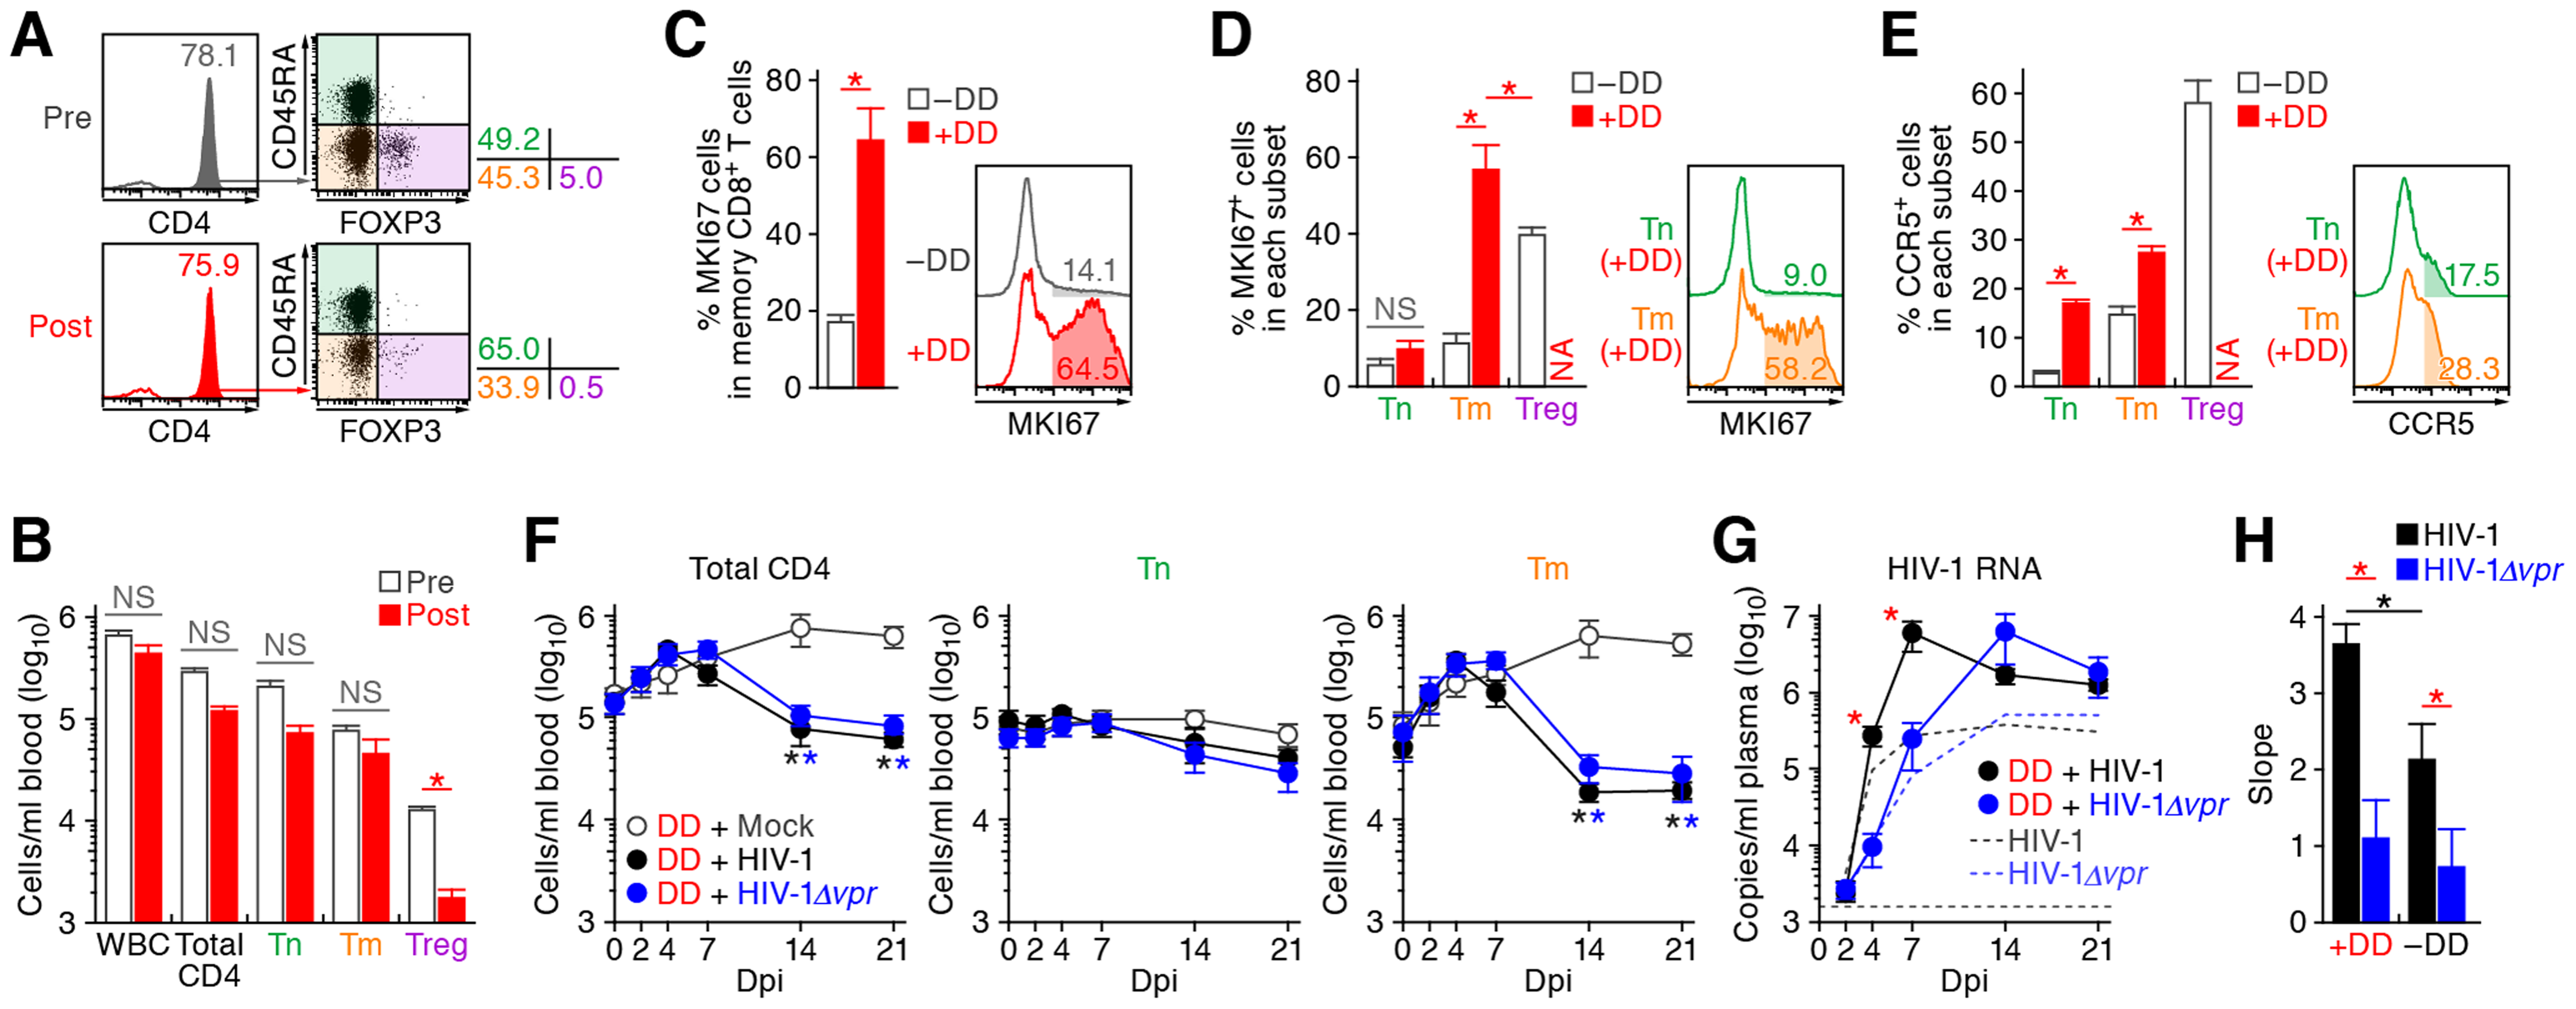 Augmentation of Vpr's effect and HIV-1 propagation by Treg depletion.